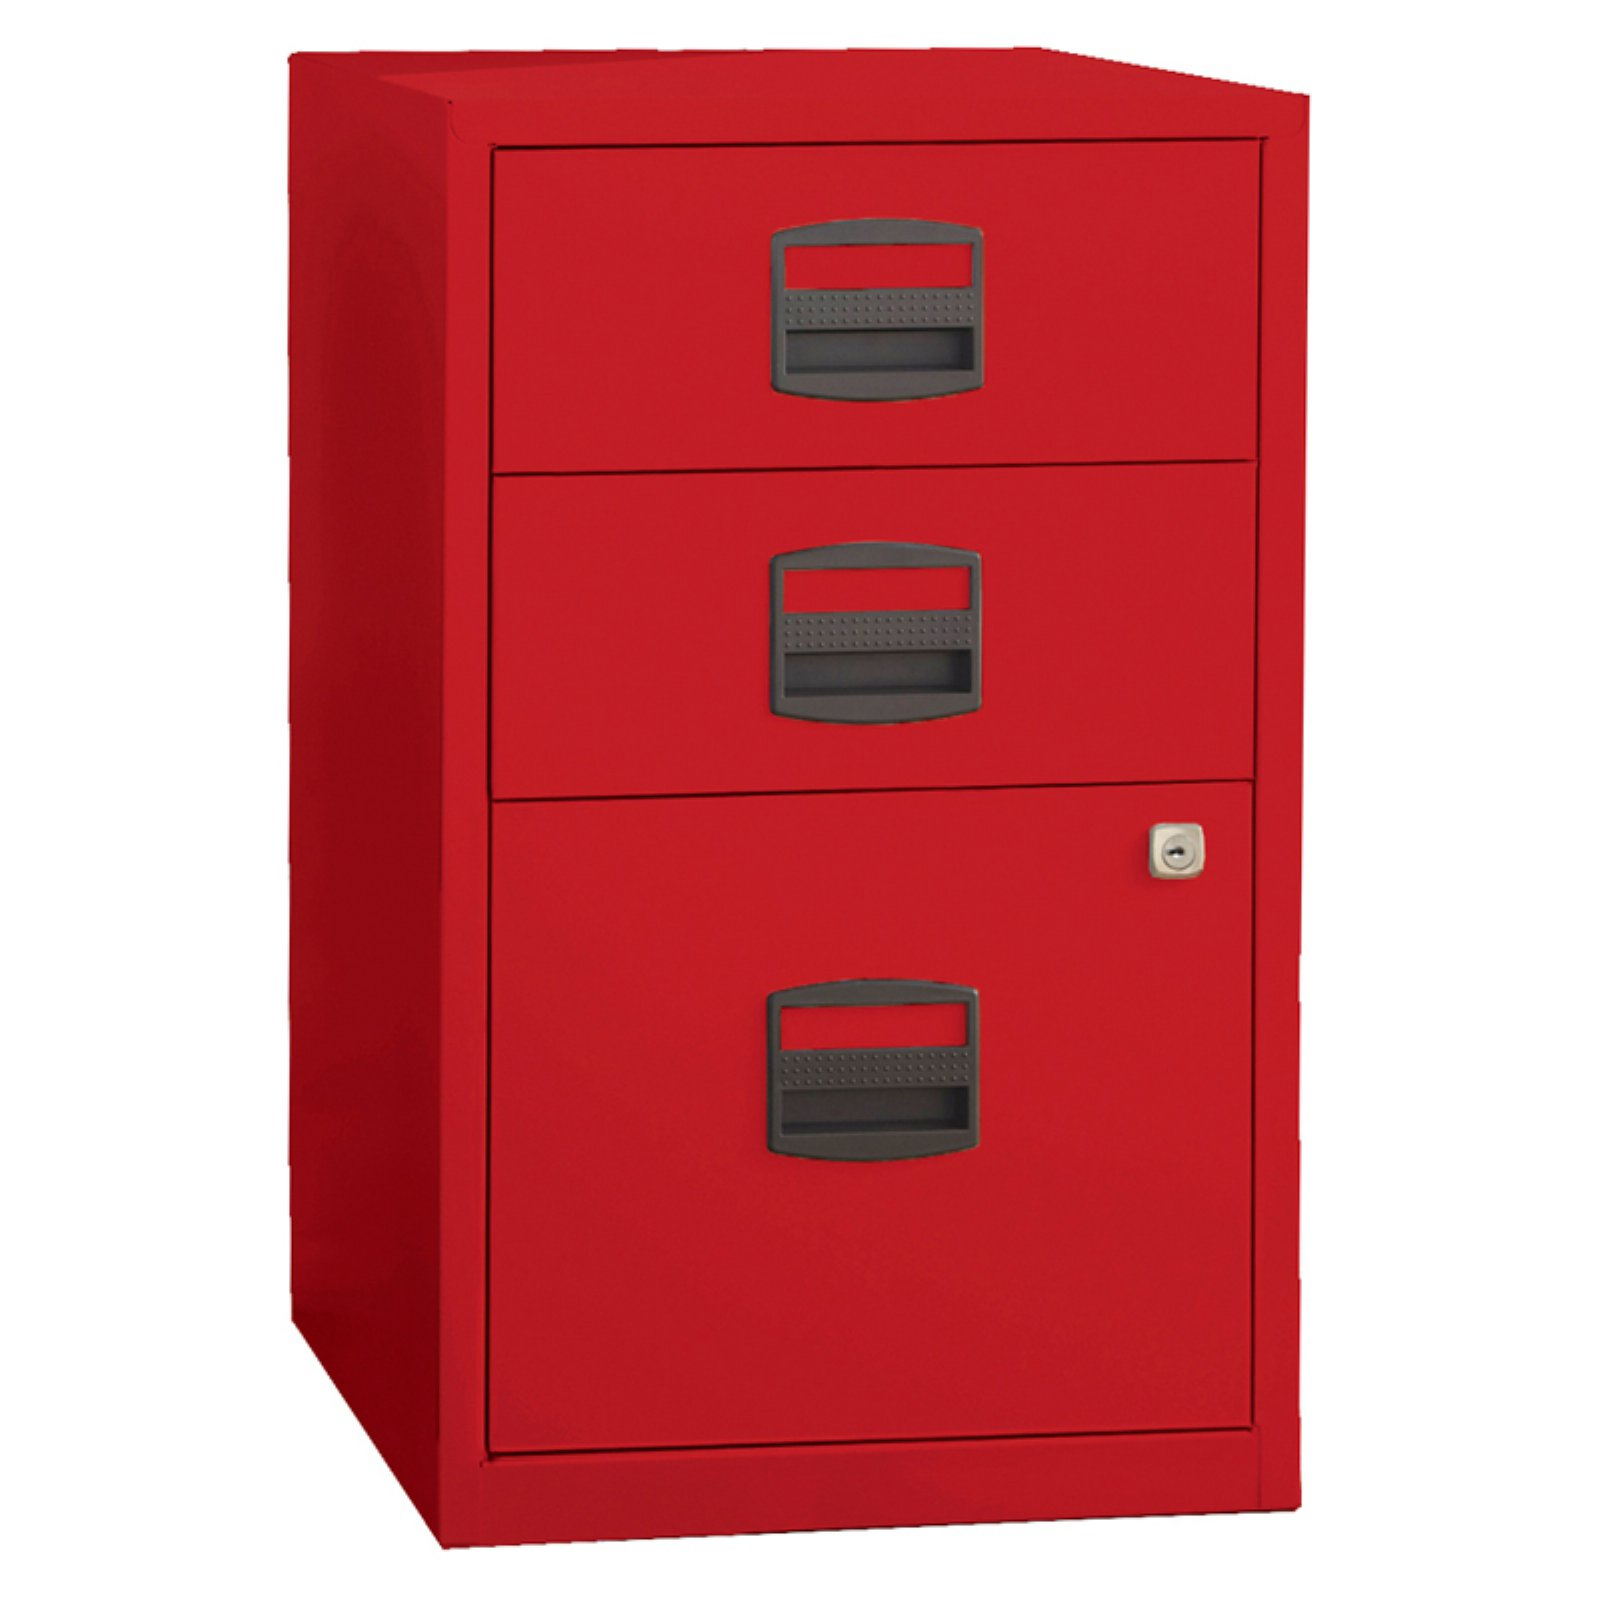 Bisley Three Drawer Steel Home Or Office Filing Cabinet   Walmart.com